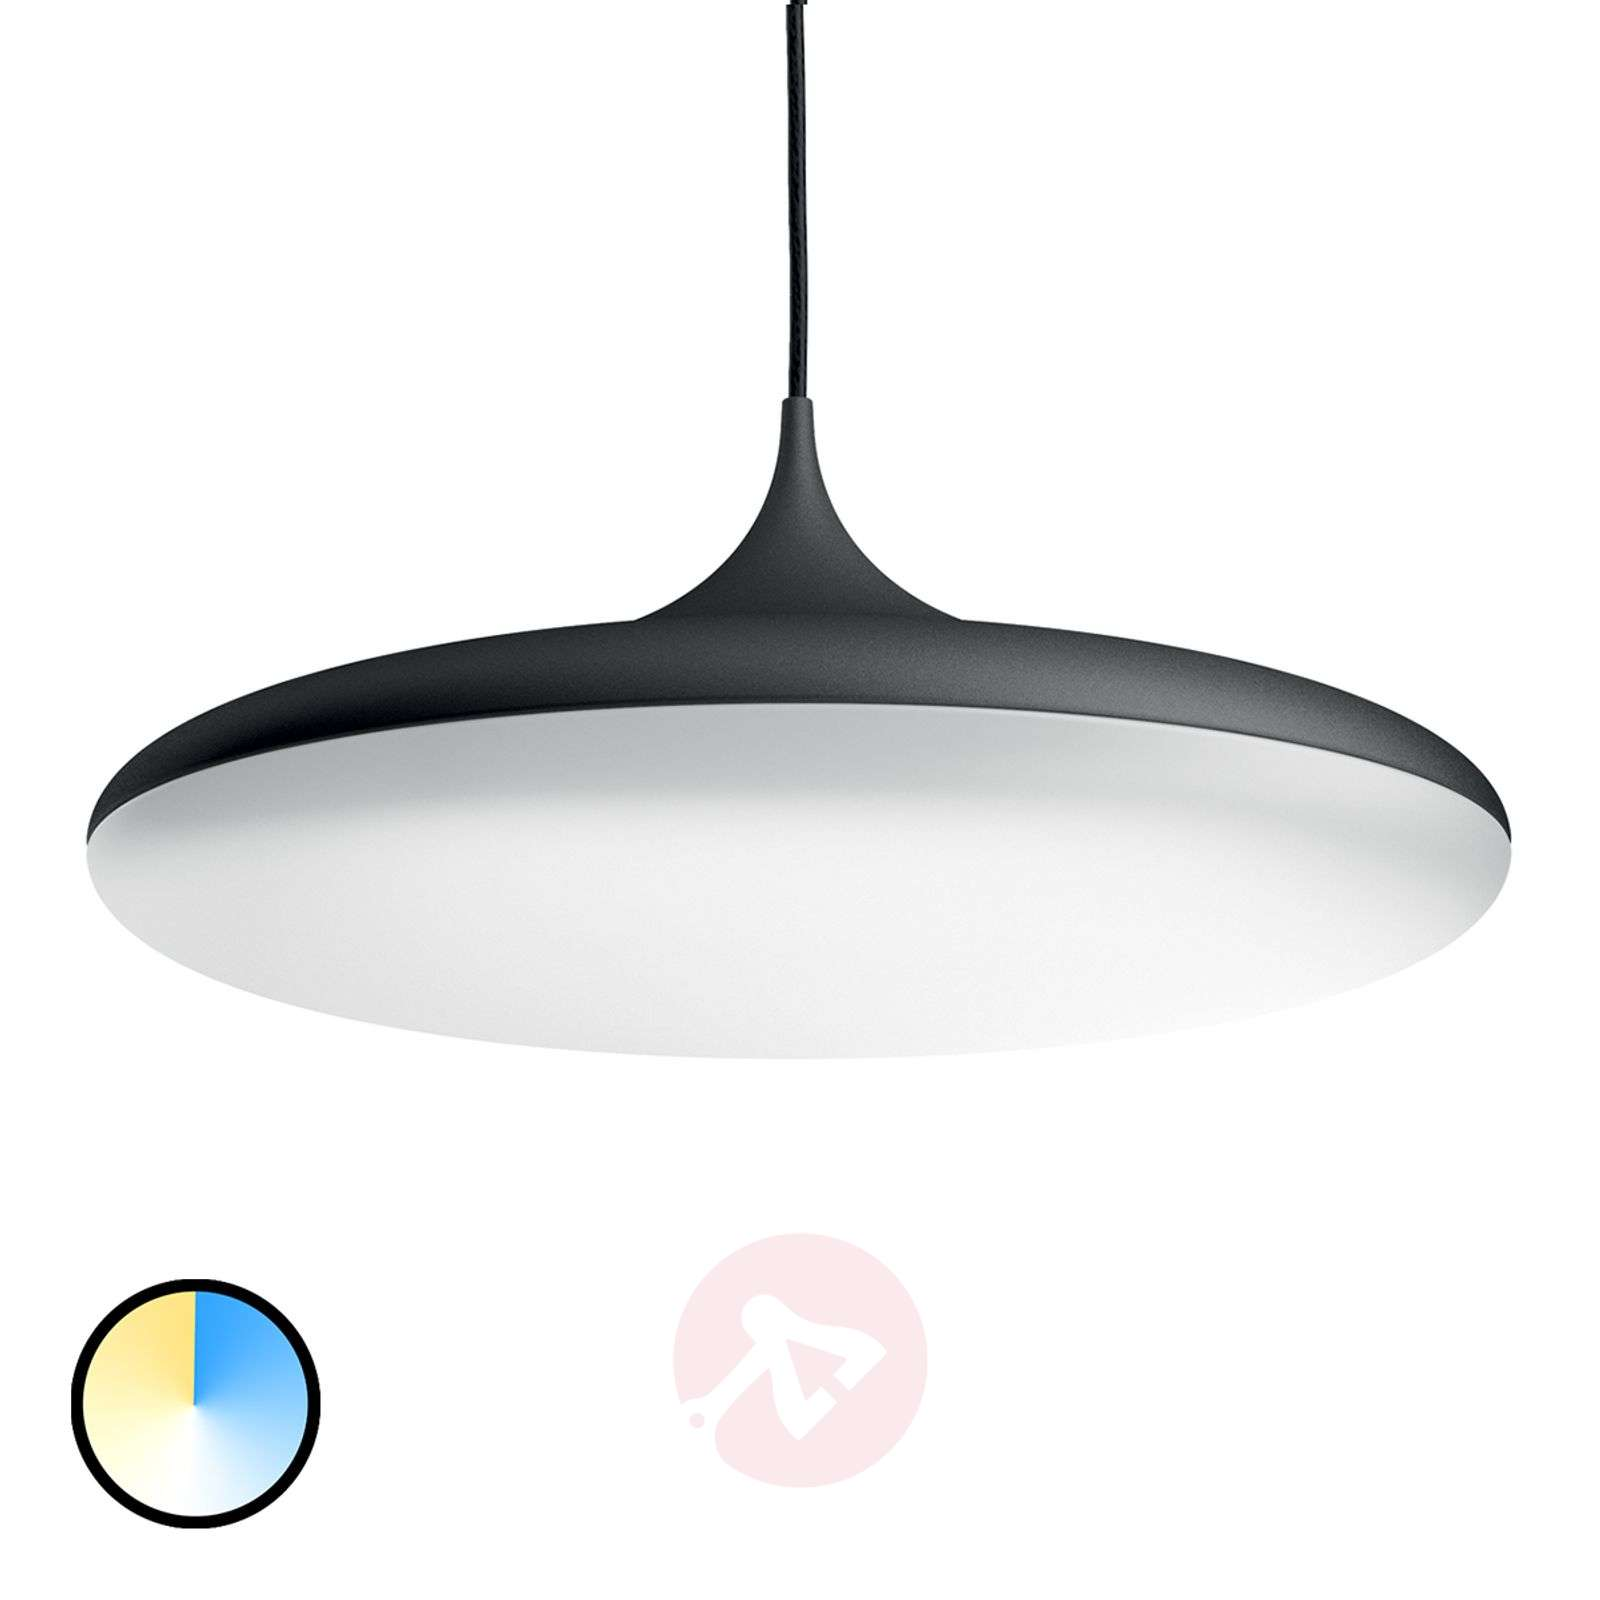 Plafoniera A Led Beign Philips Hue : Cher controllable philips hue led hanging lamp lights.ie